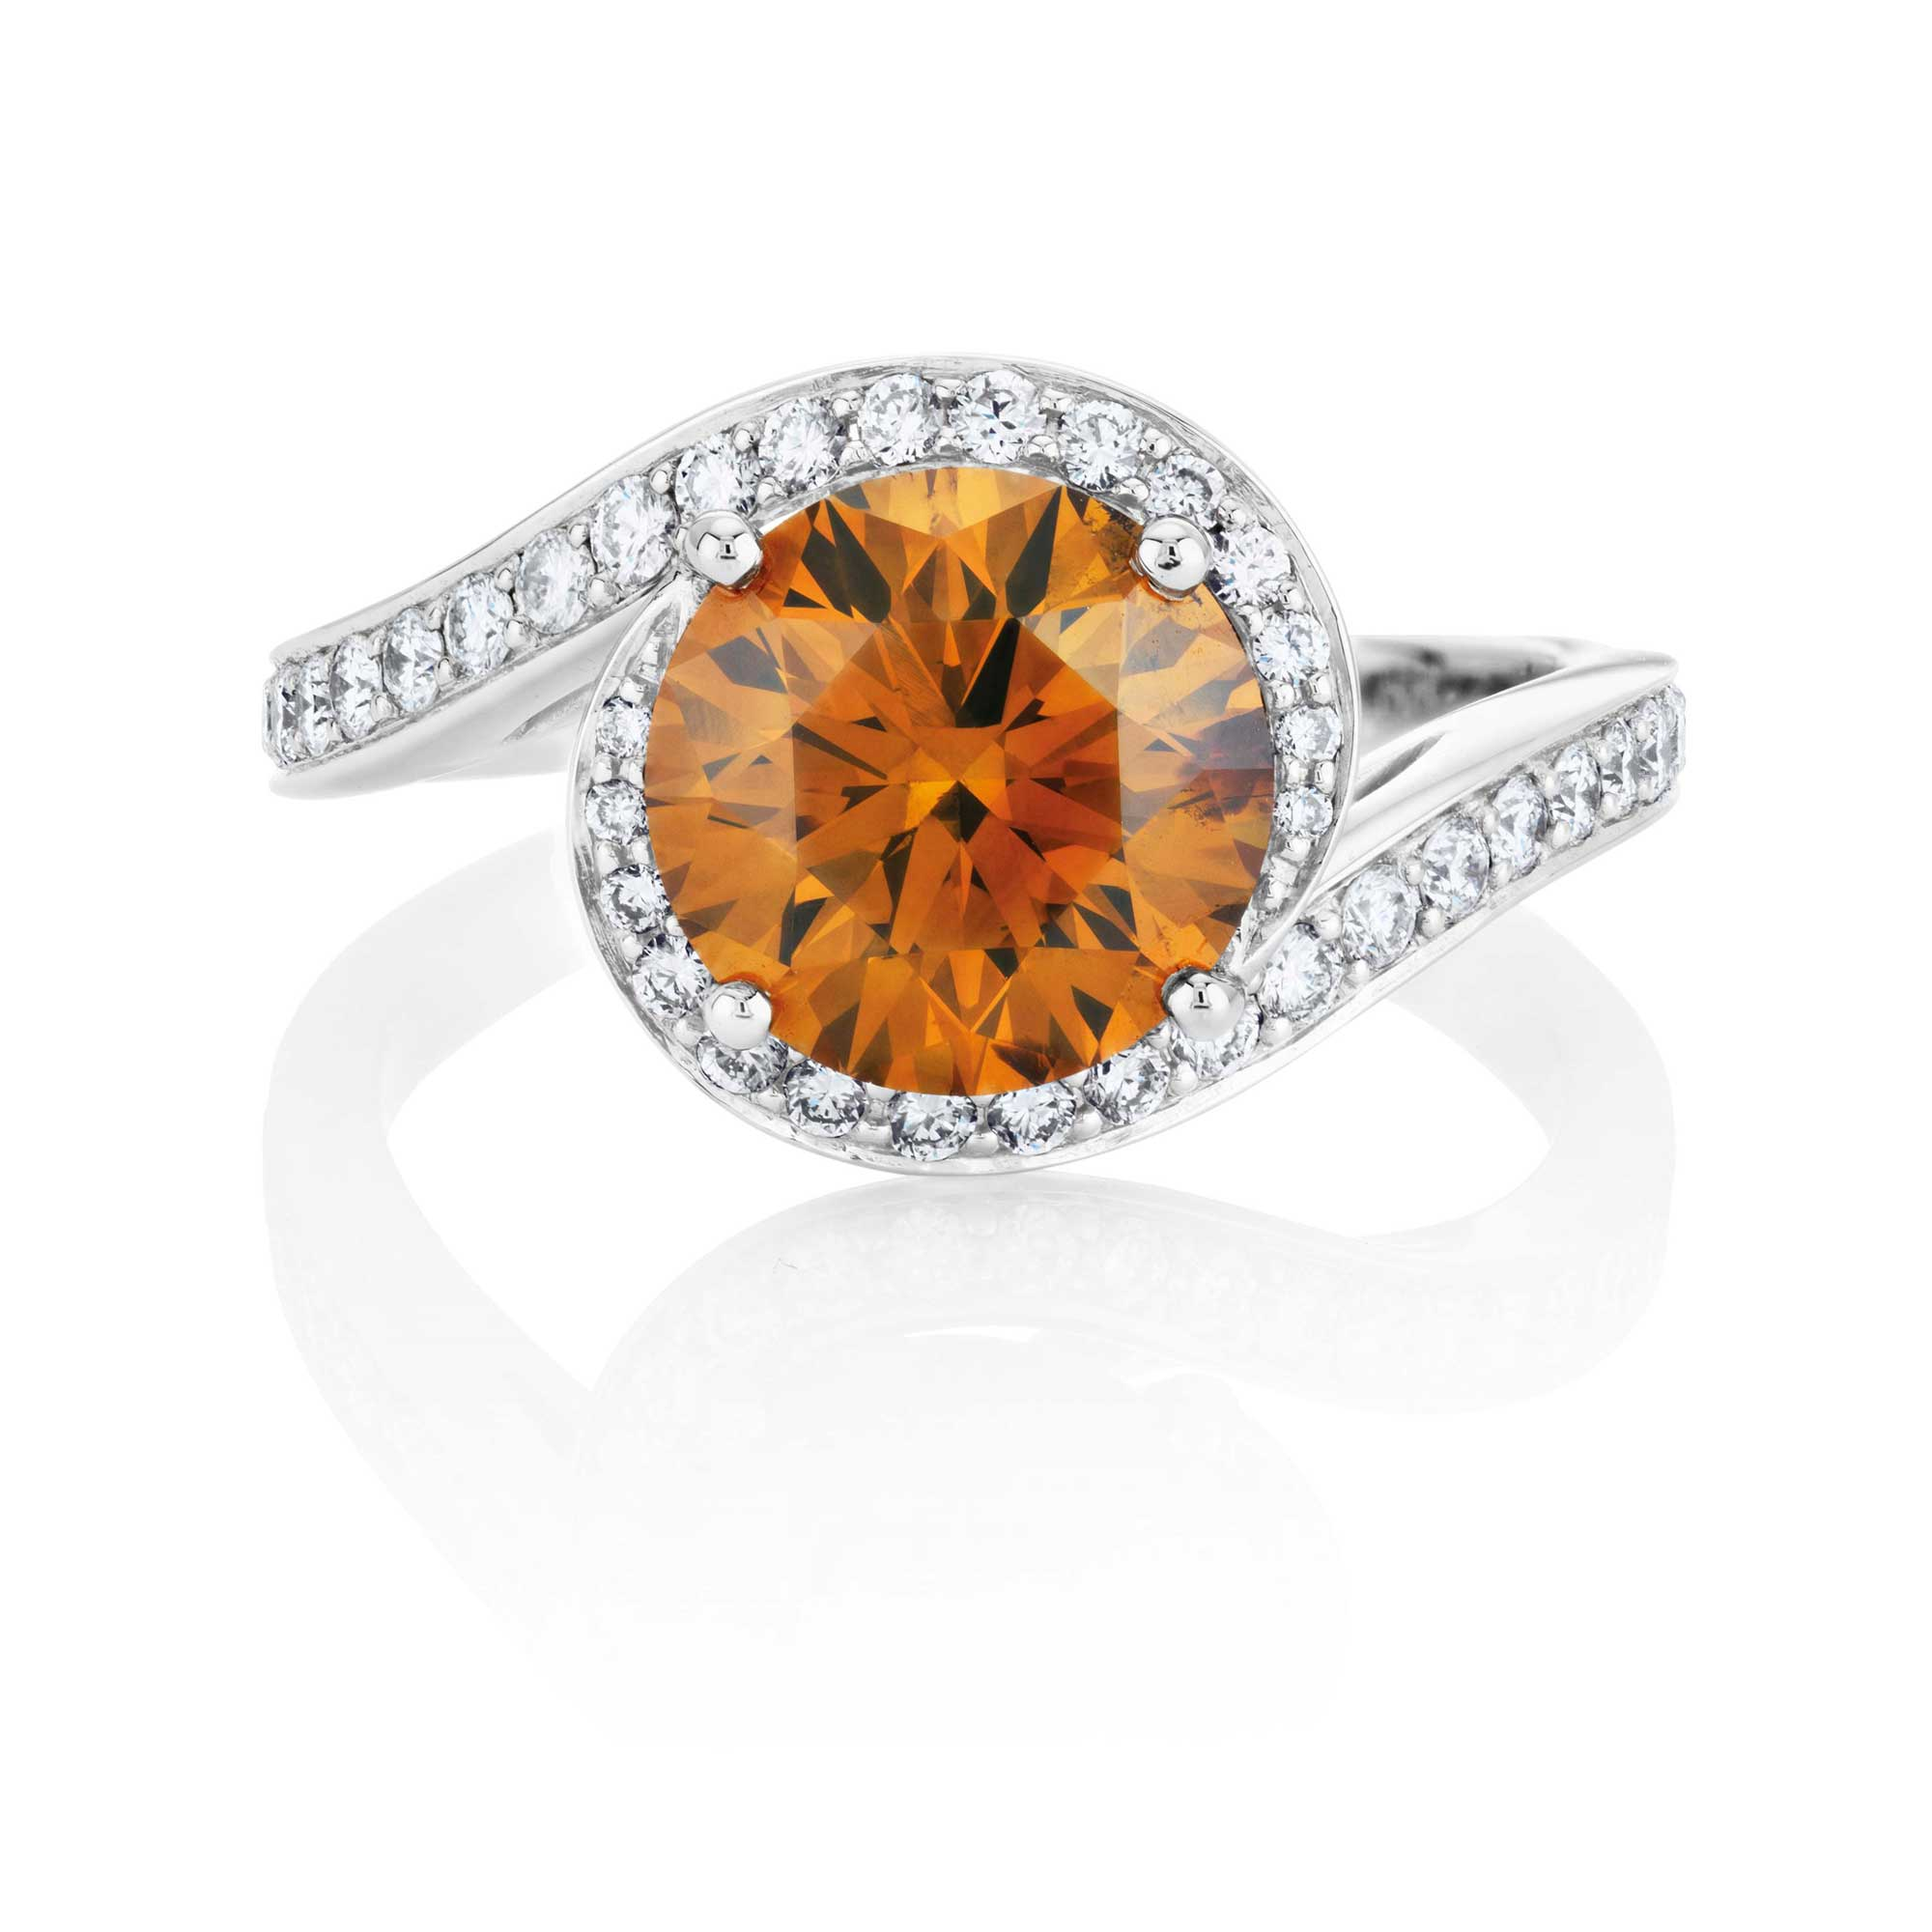 strings ring product in orange y with melod engagement melodia add rings yellow canada carrera ada gold diamonds arrera